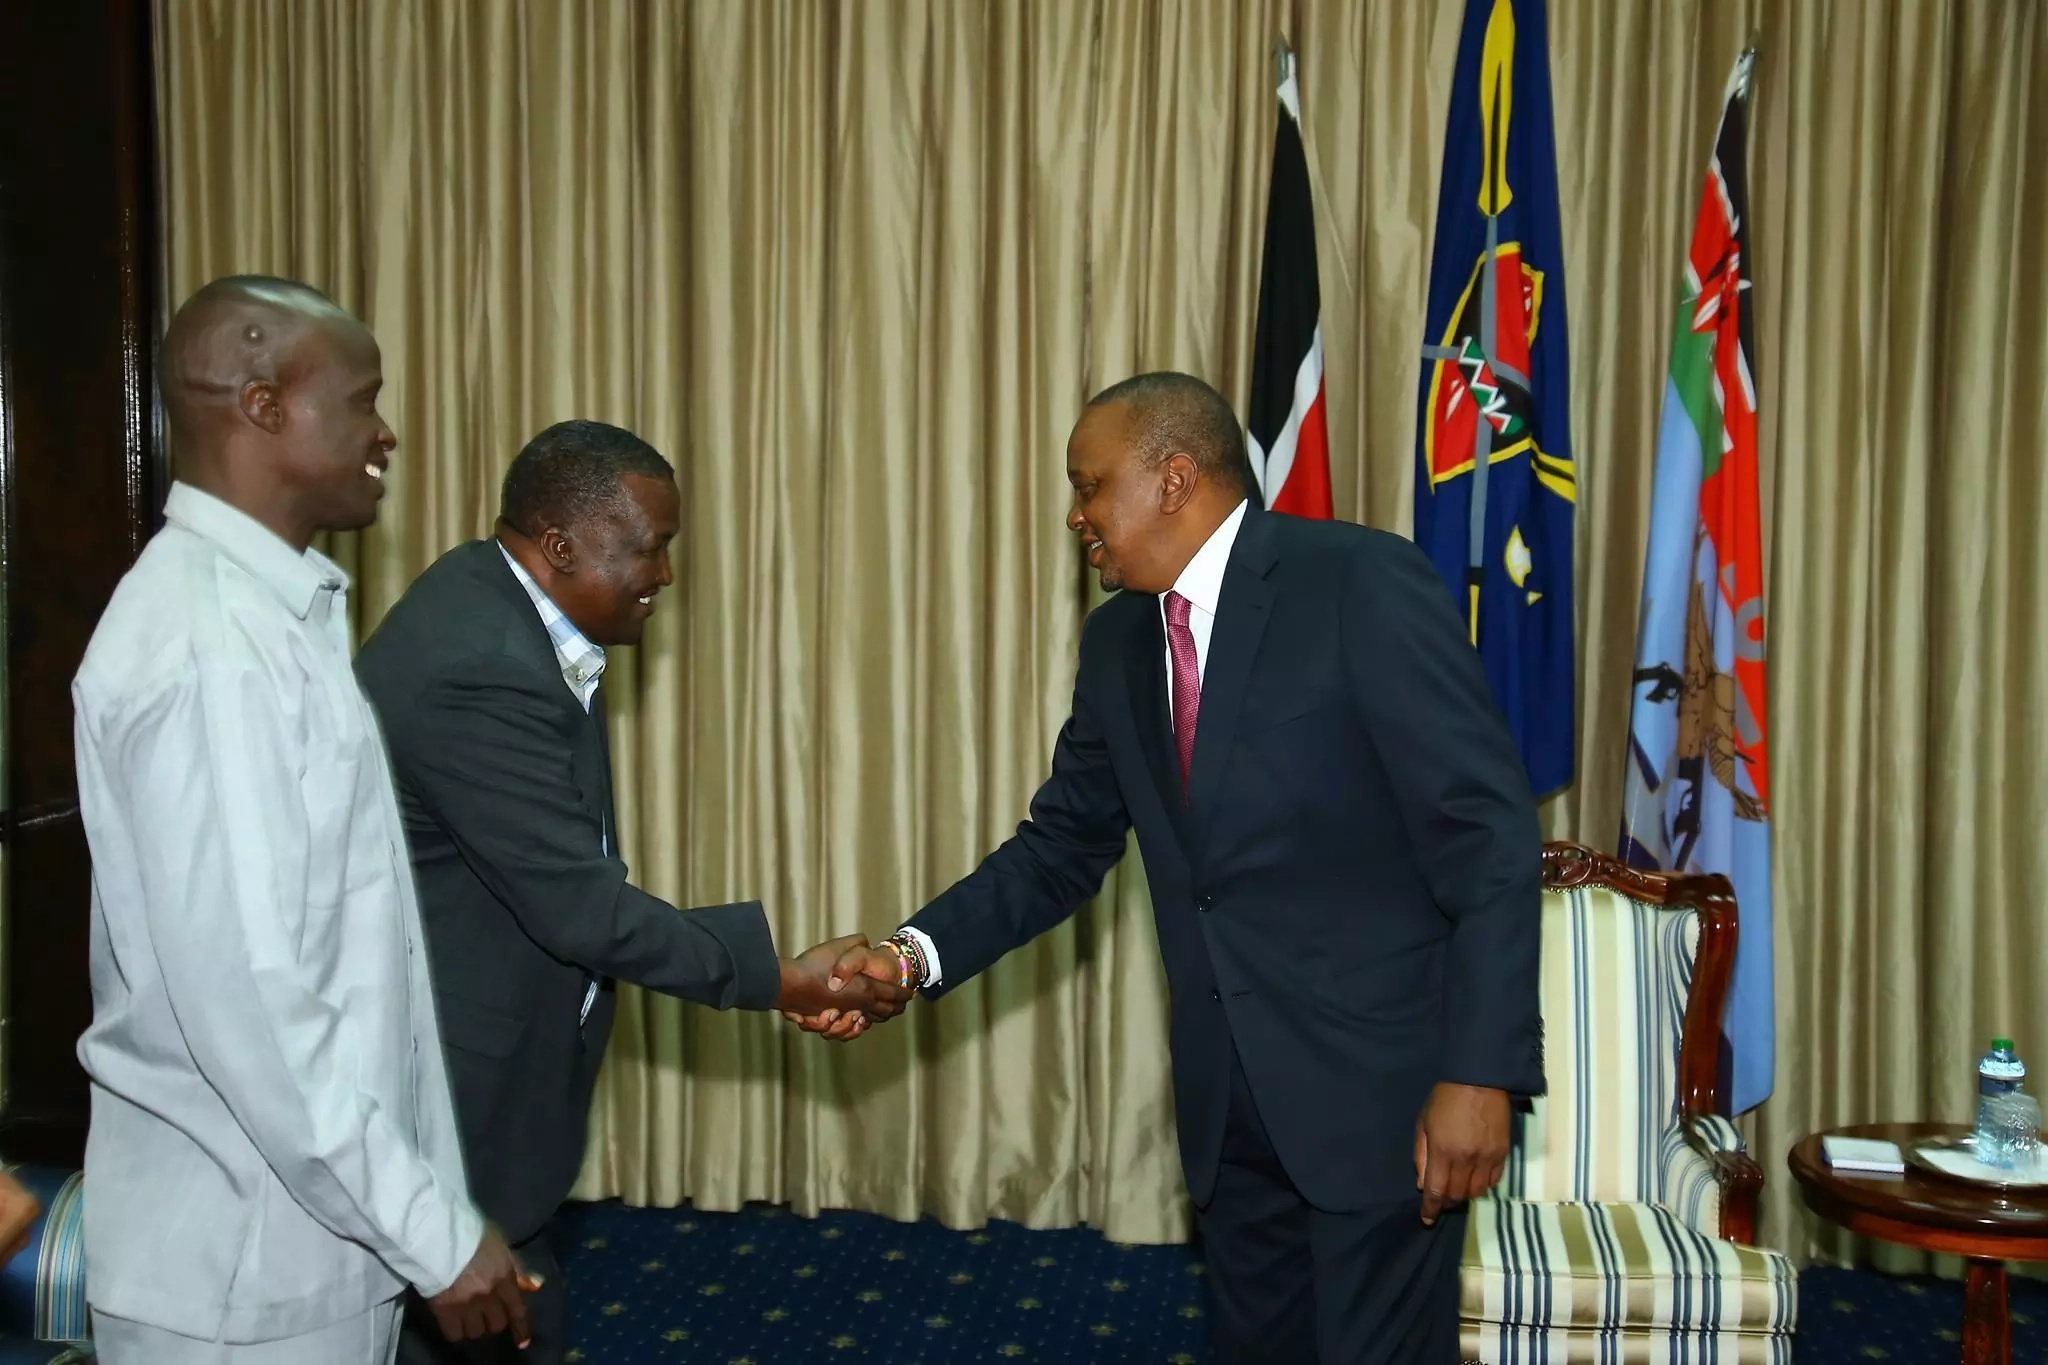 Cabinet secretaries remain in office until Uhuru completes reshuffle - State House